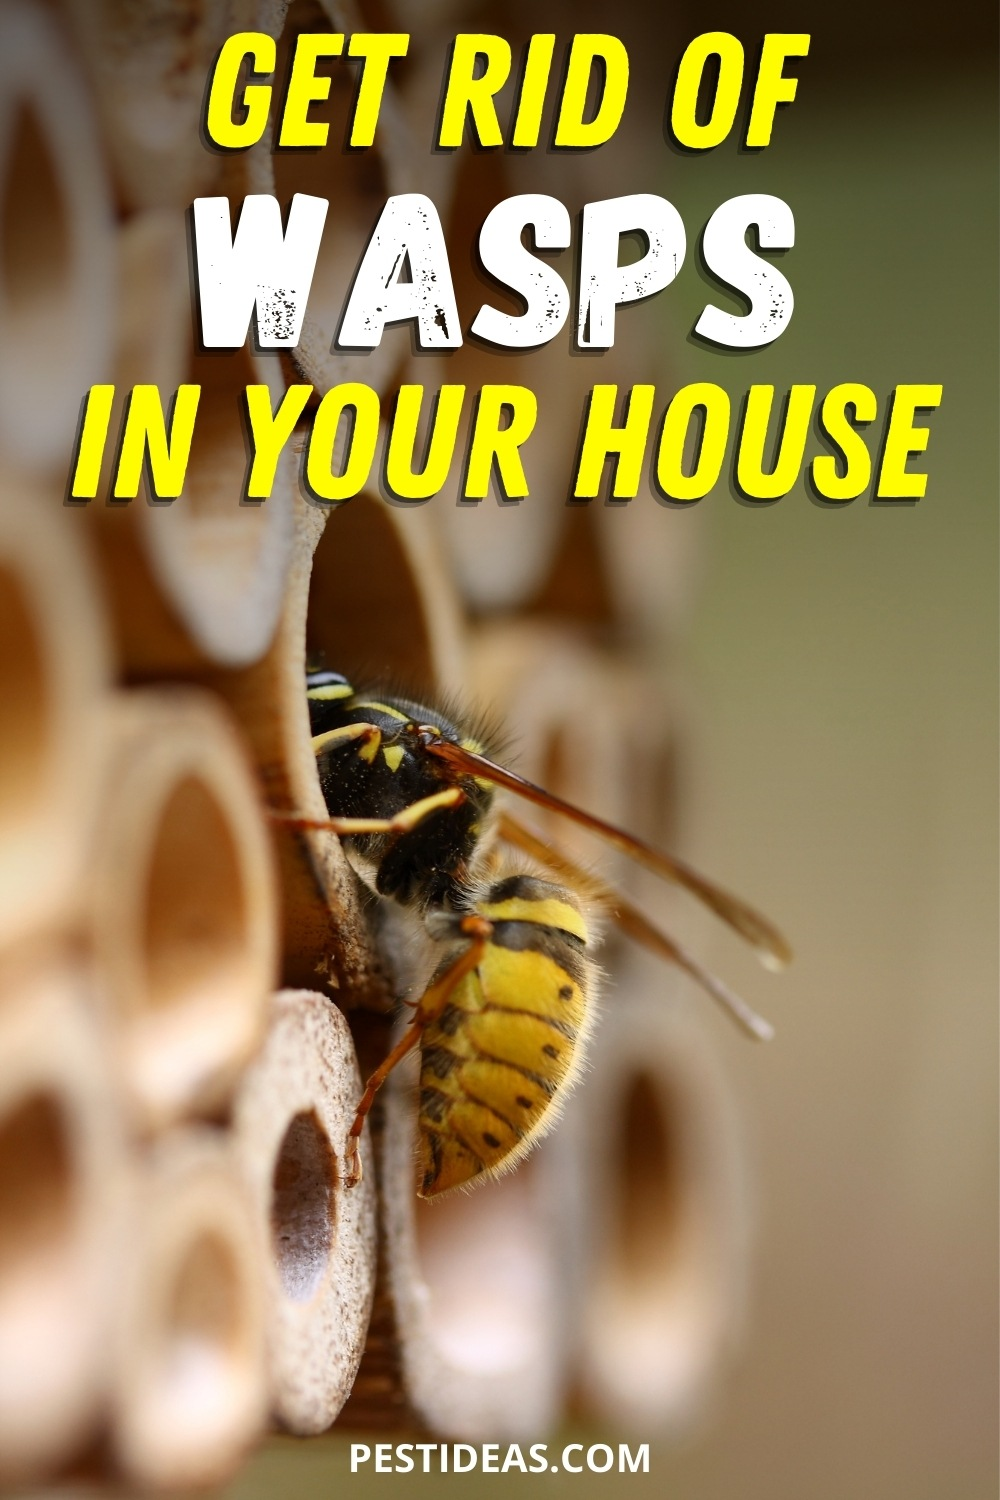 Get rid of wasps in your house